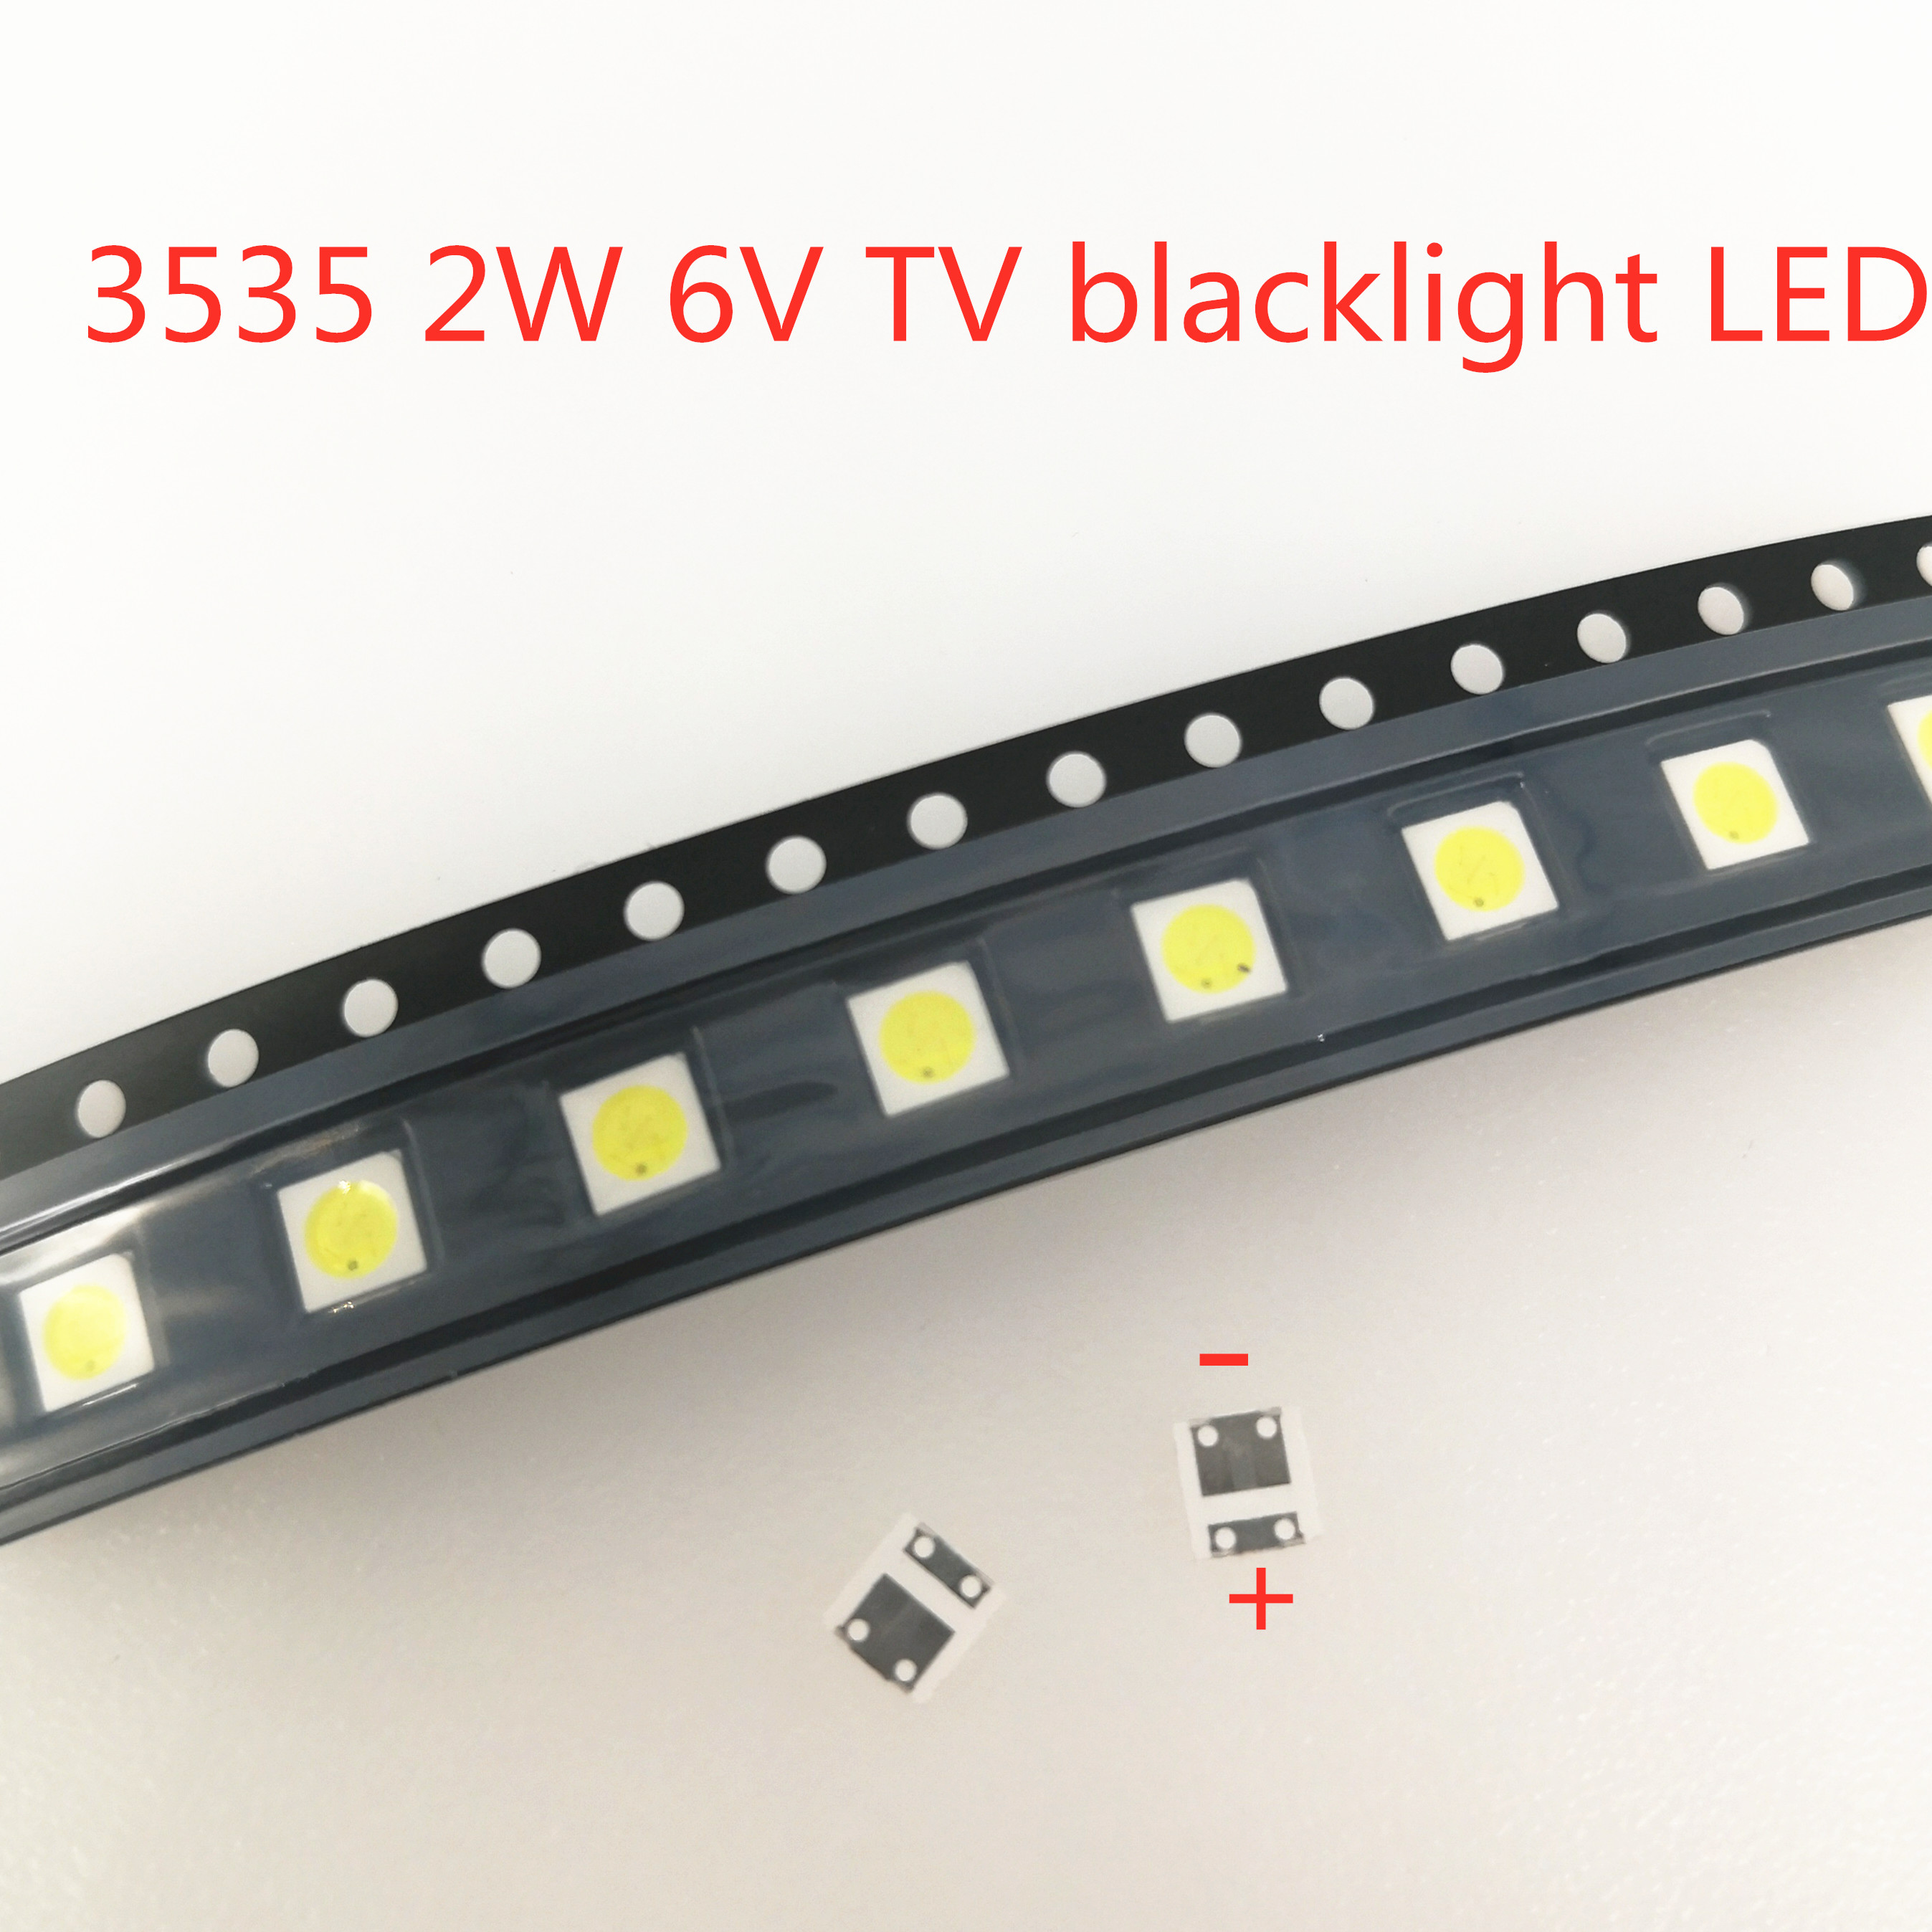 50-1000PCS 2W 6V 3V 1W 3535 SMD LED Replace LG Innotek  LCD TV Back Light Beads TV Backlight Diode Repair Application